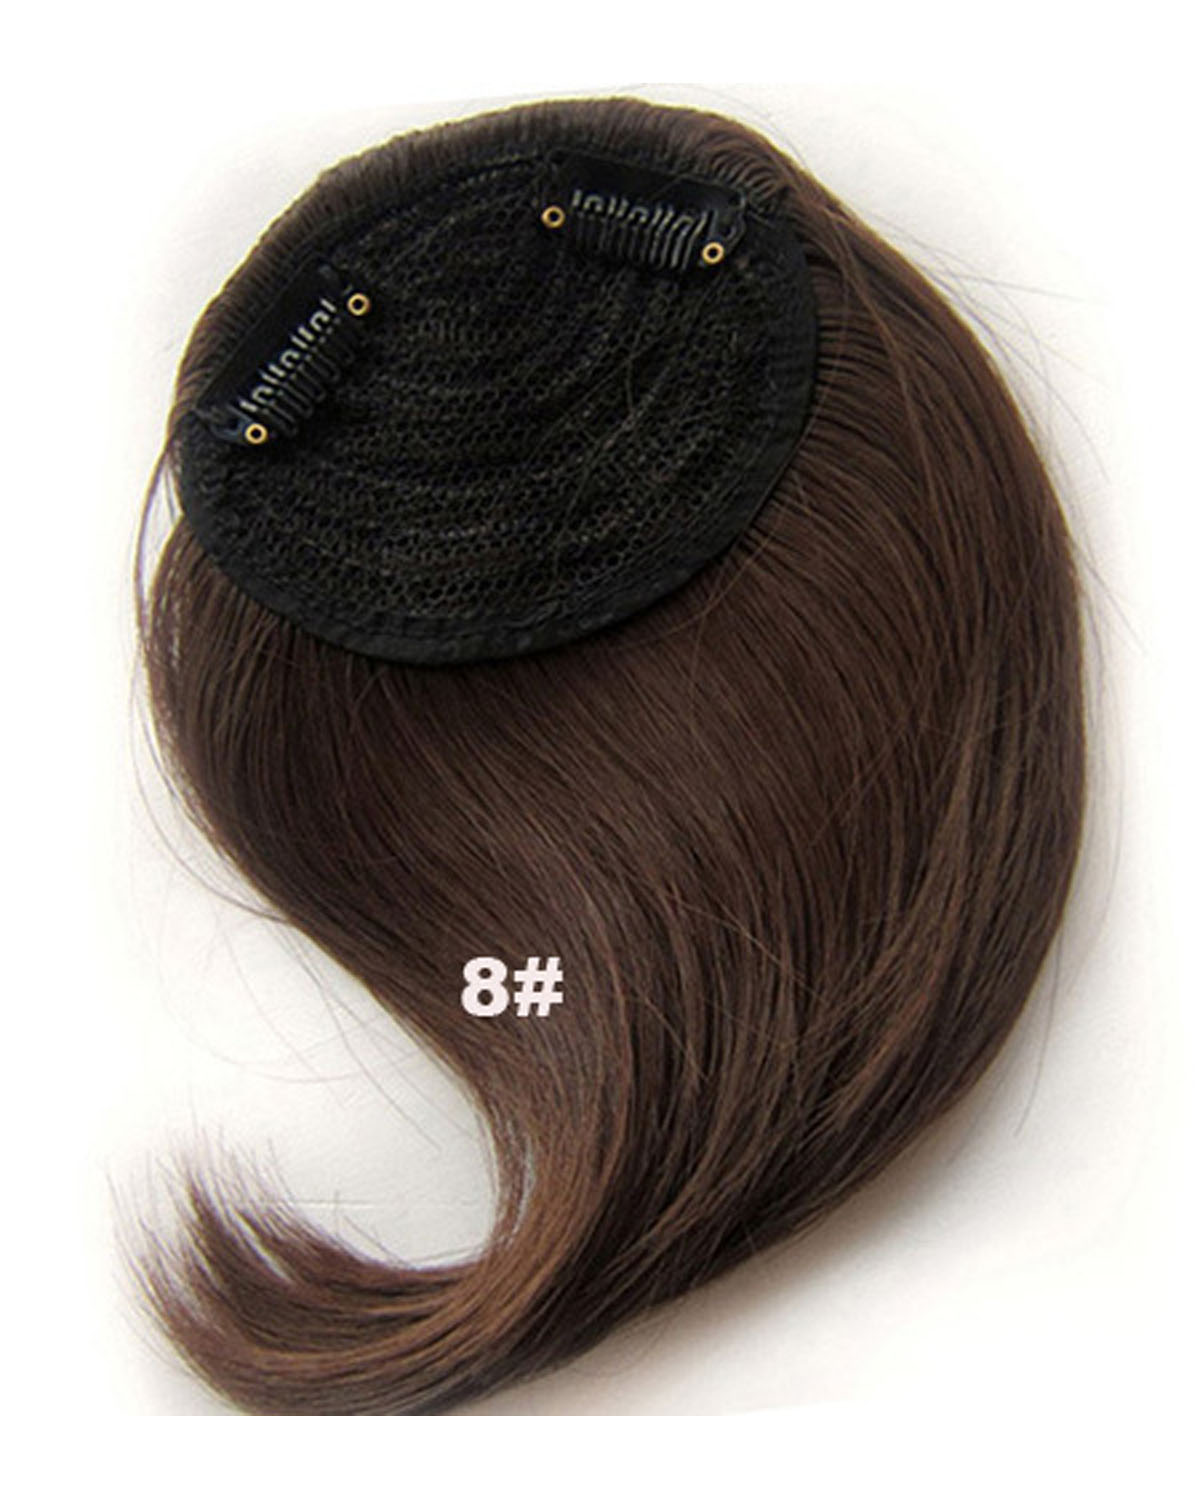 Girls Pretty Straight Short Bangs Clip in Synthetic Hair Extension Fringe Bangs Hairpiece 8#